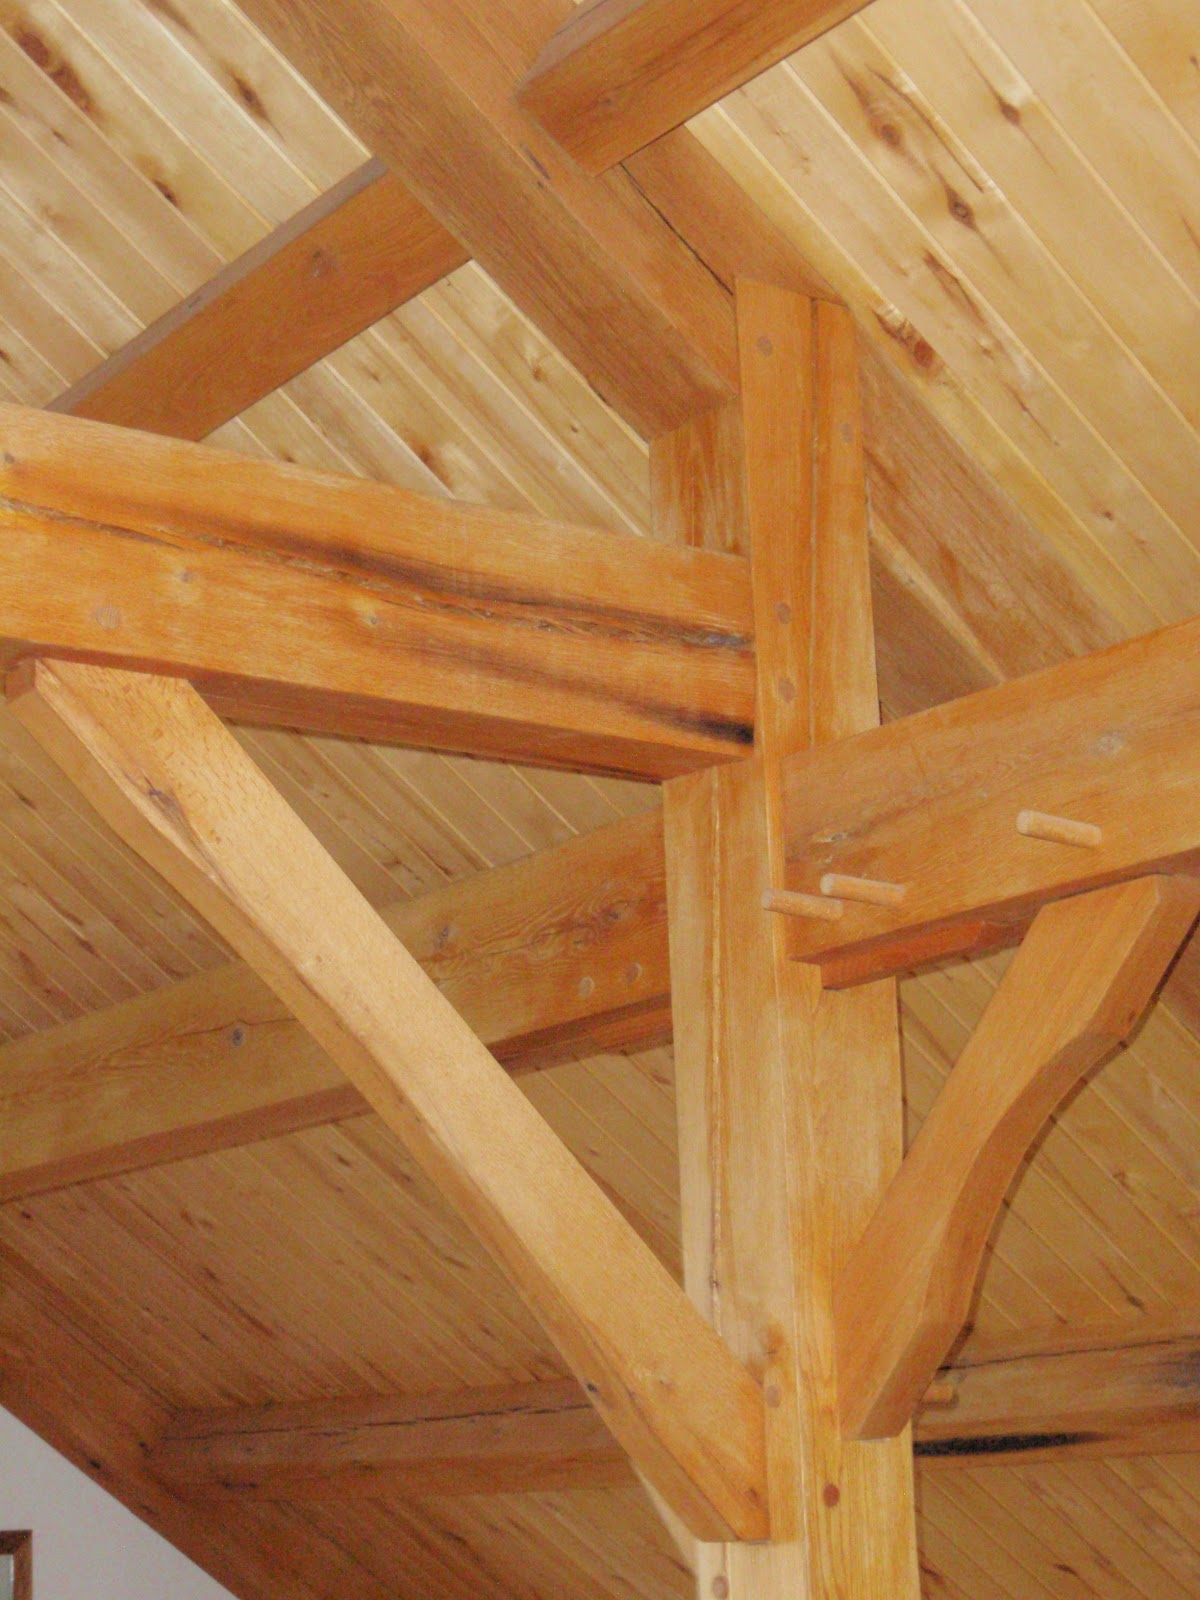 michaels timber framing joinery